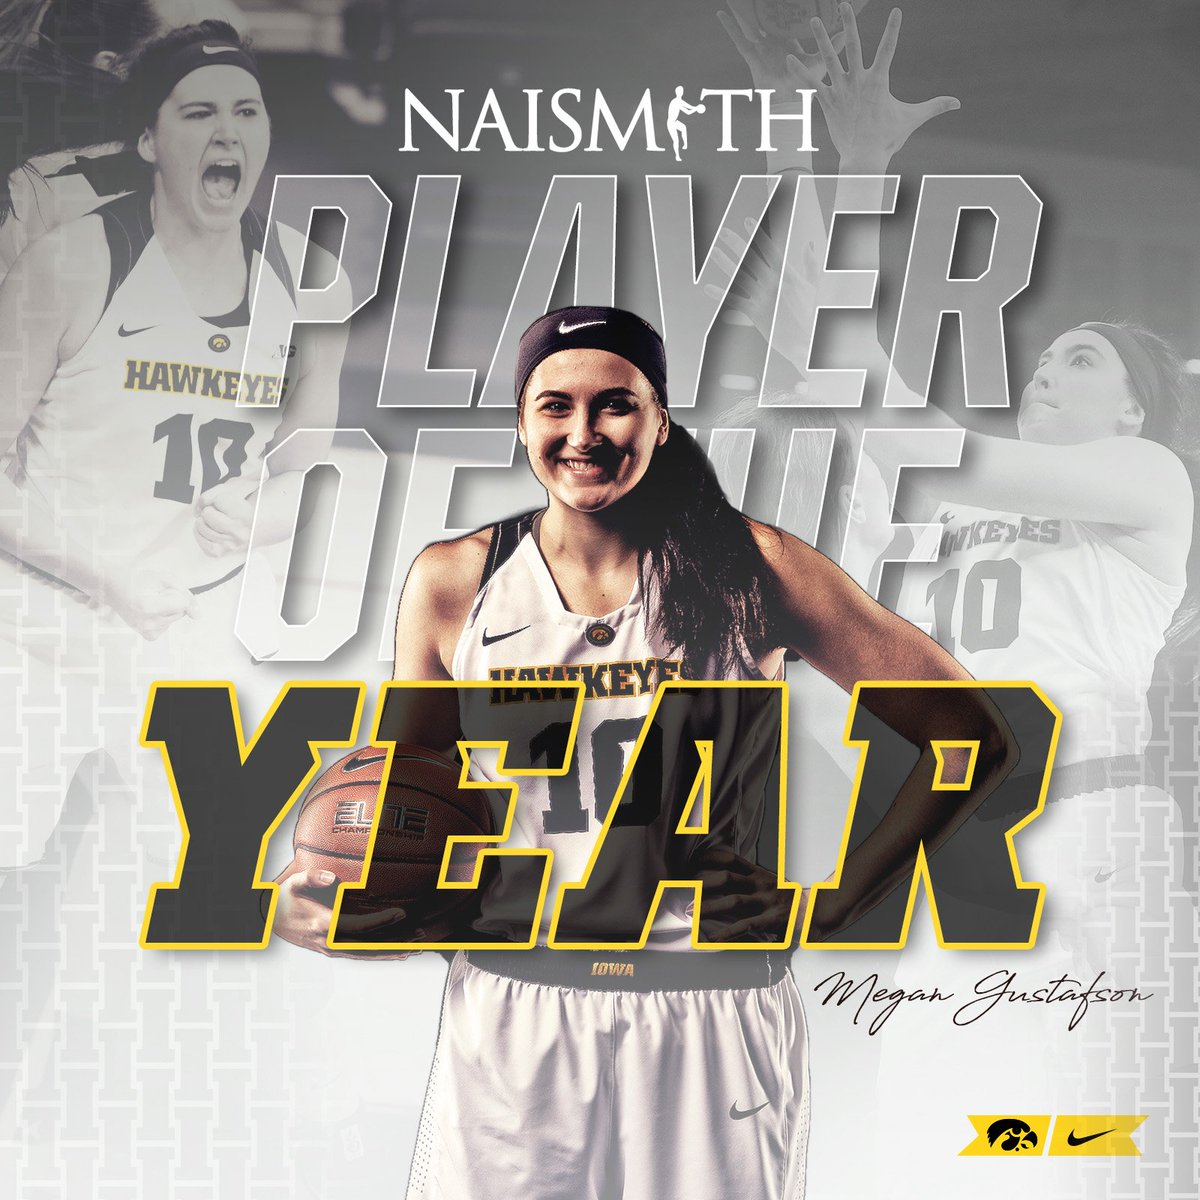 PLAYER OF THE YEAR. PLAYER OF THE YEAR!   @GustafsonMeg10 is the 2019 Citizen Naismith Trophy winner! #Hawkeyes #FightForIowa